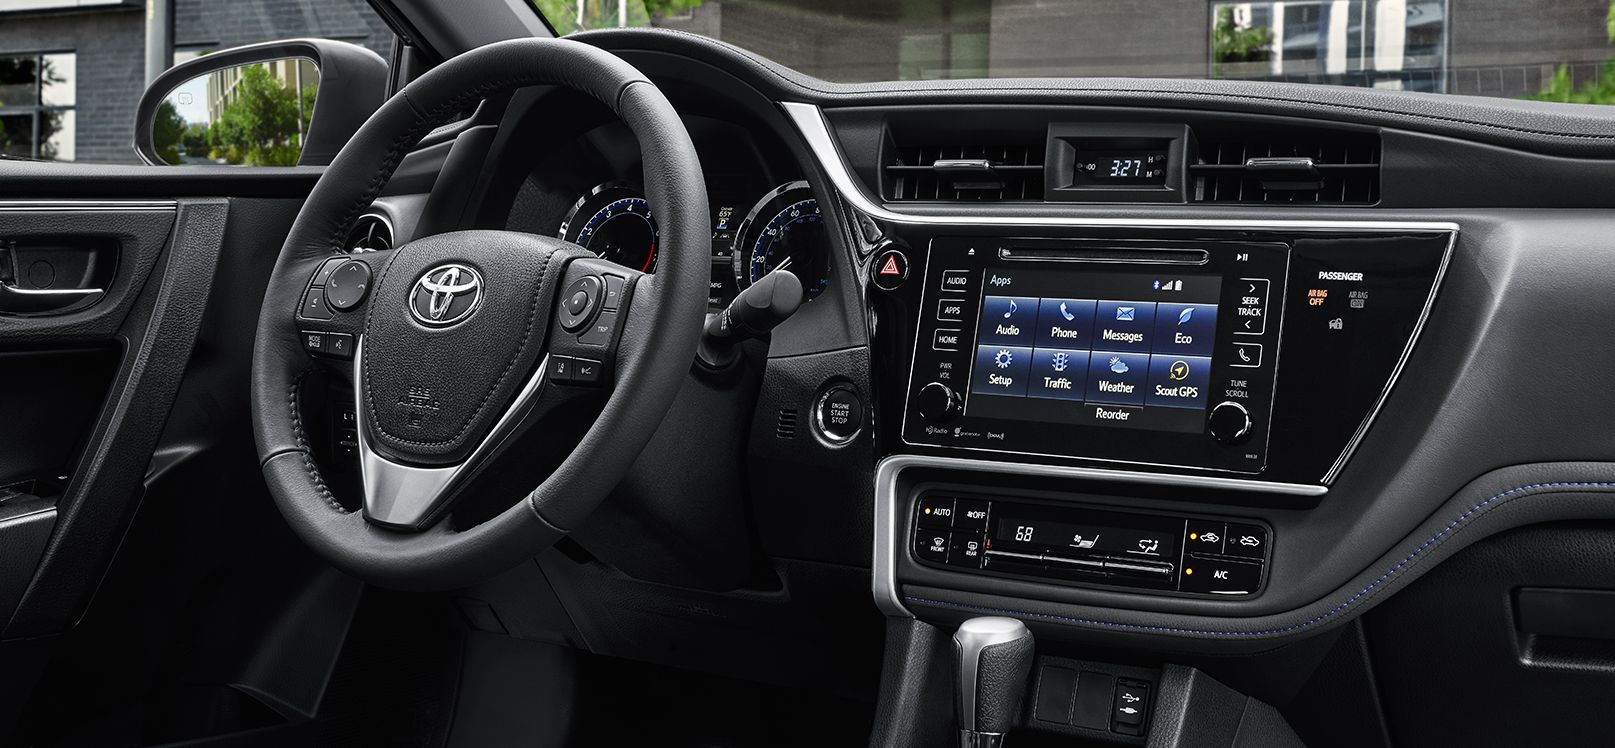 Entertainment System in the 2017 Corolla